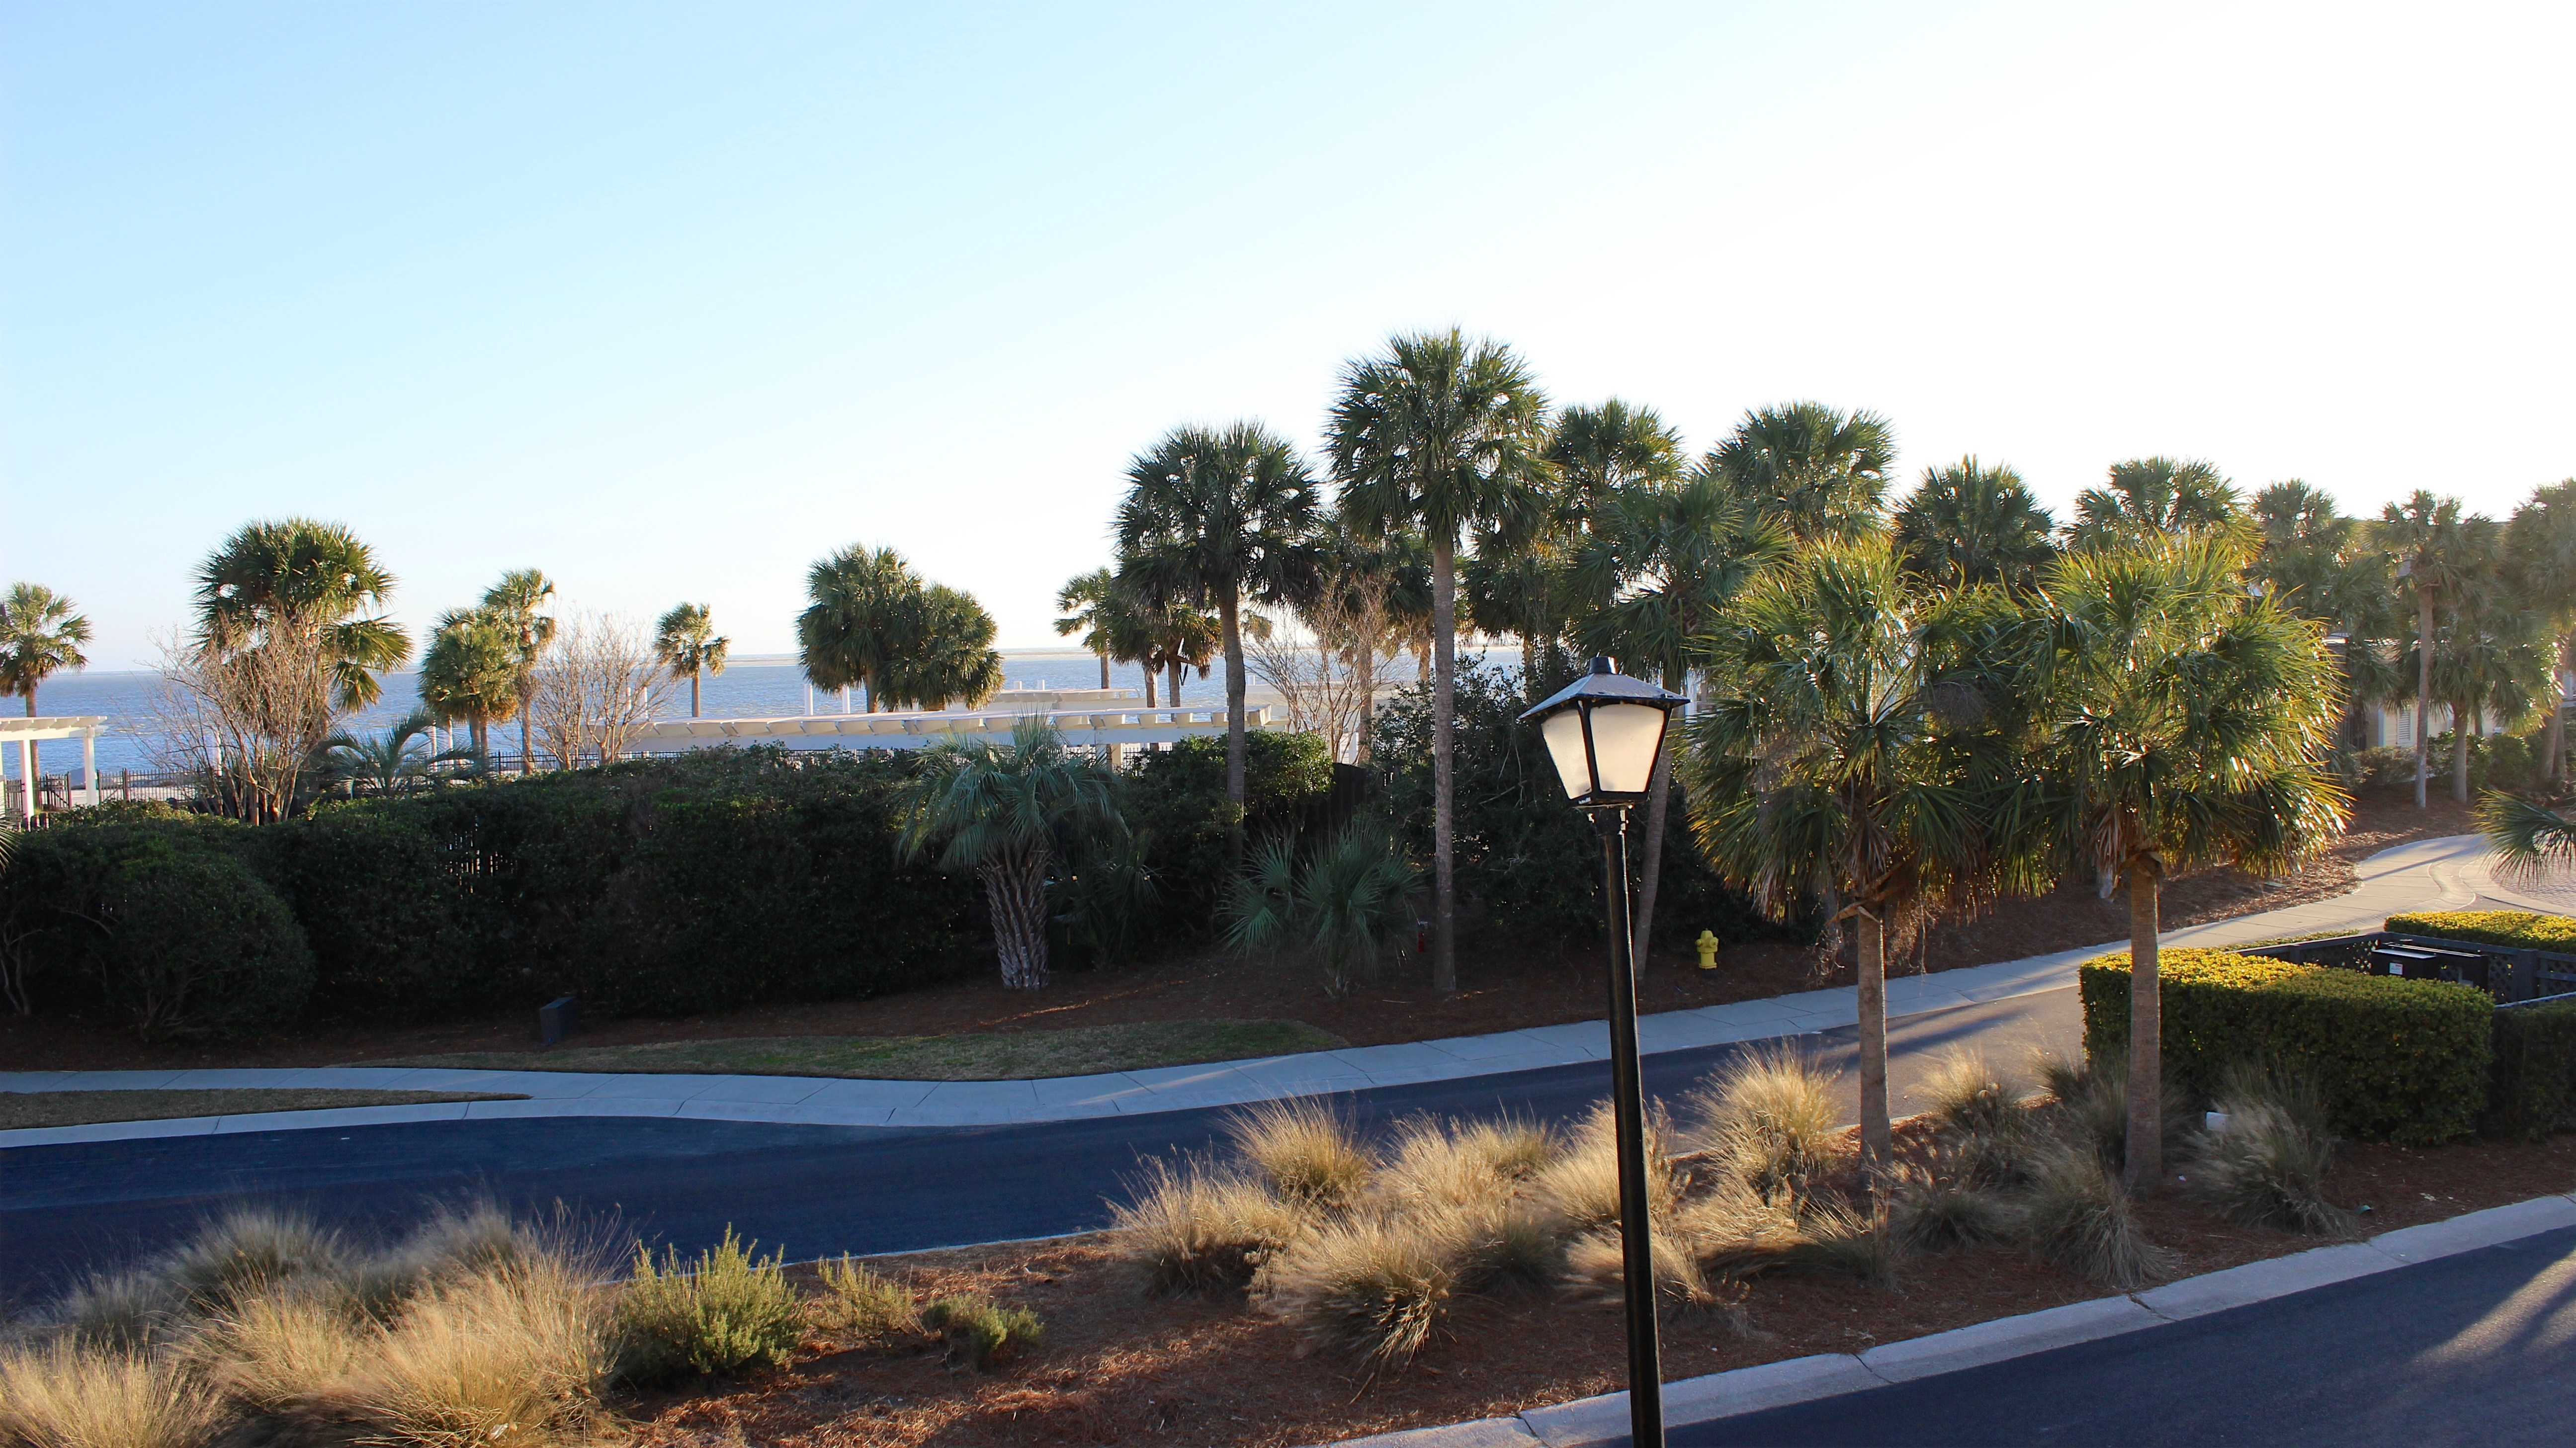 The clubhouse and golf courses are just steps away.